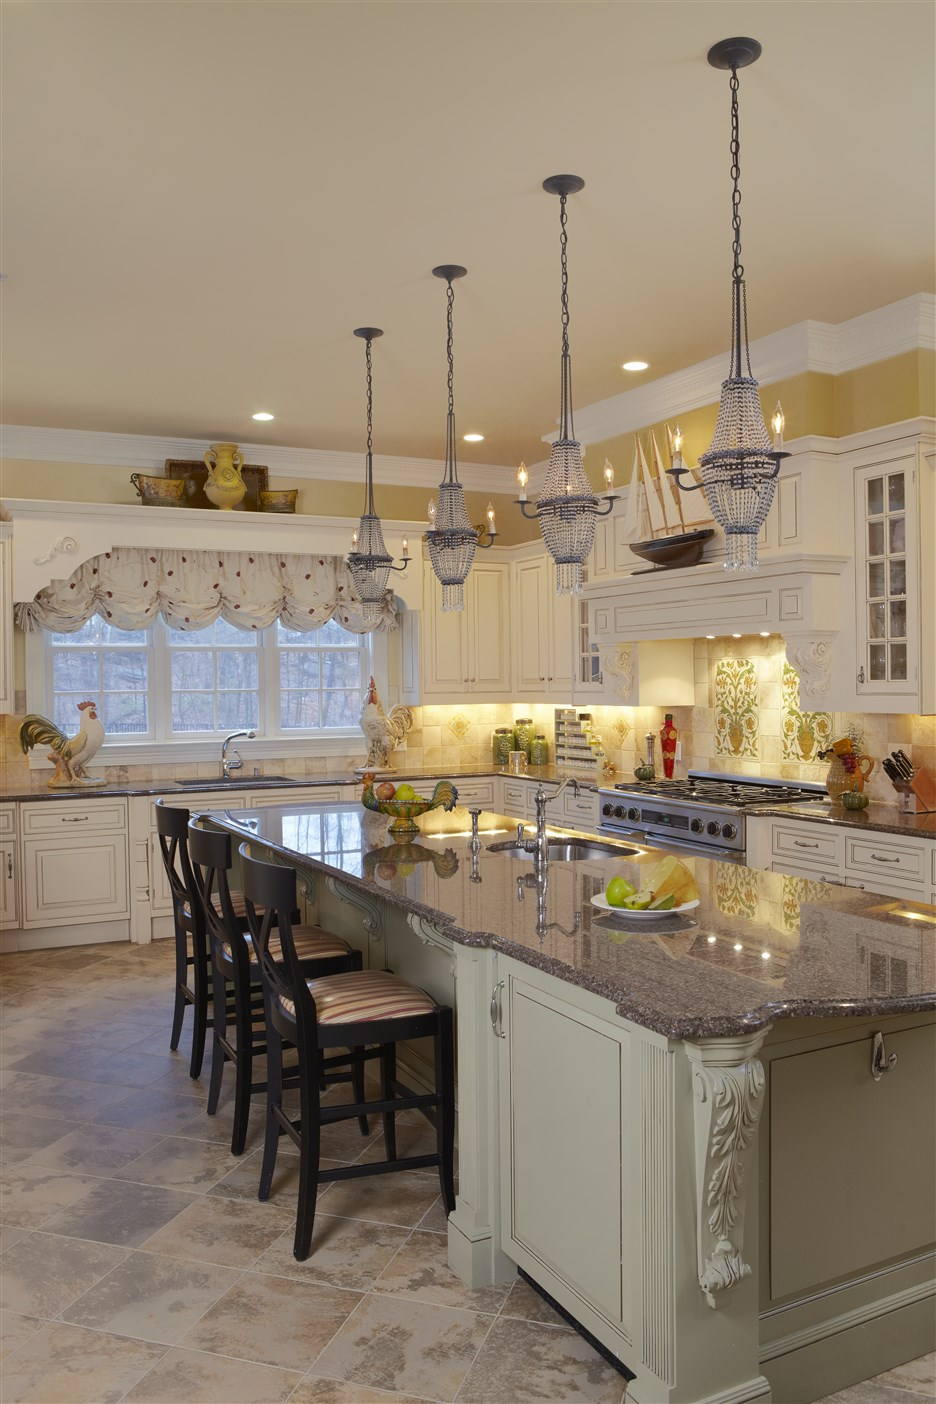 Modern design kitchen with four stylish hanging lamp on ceiling